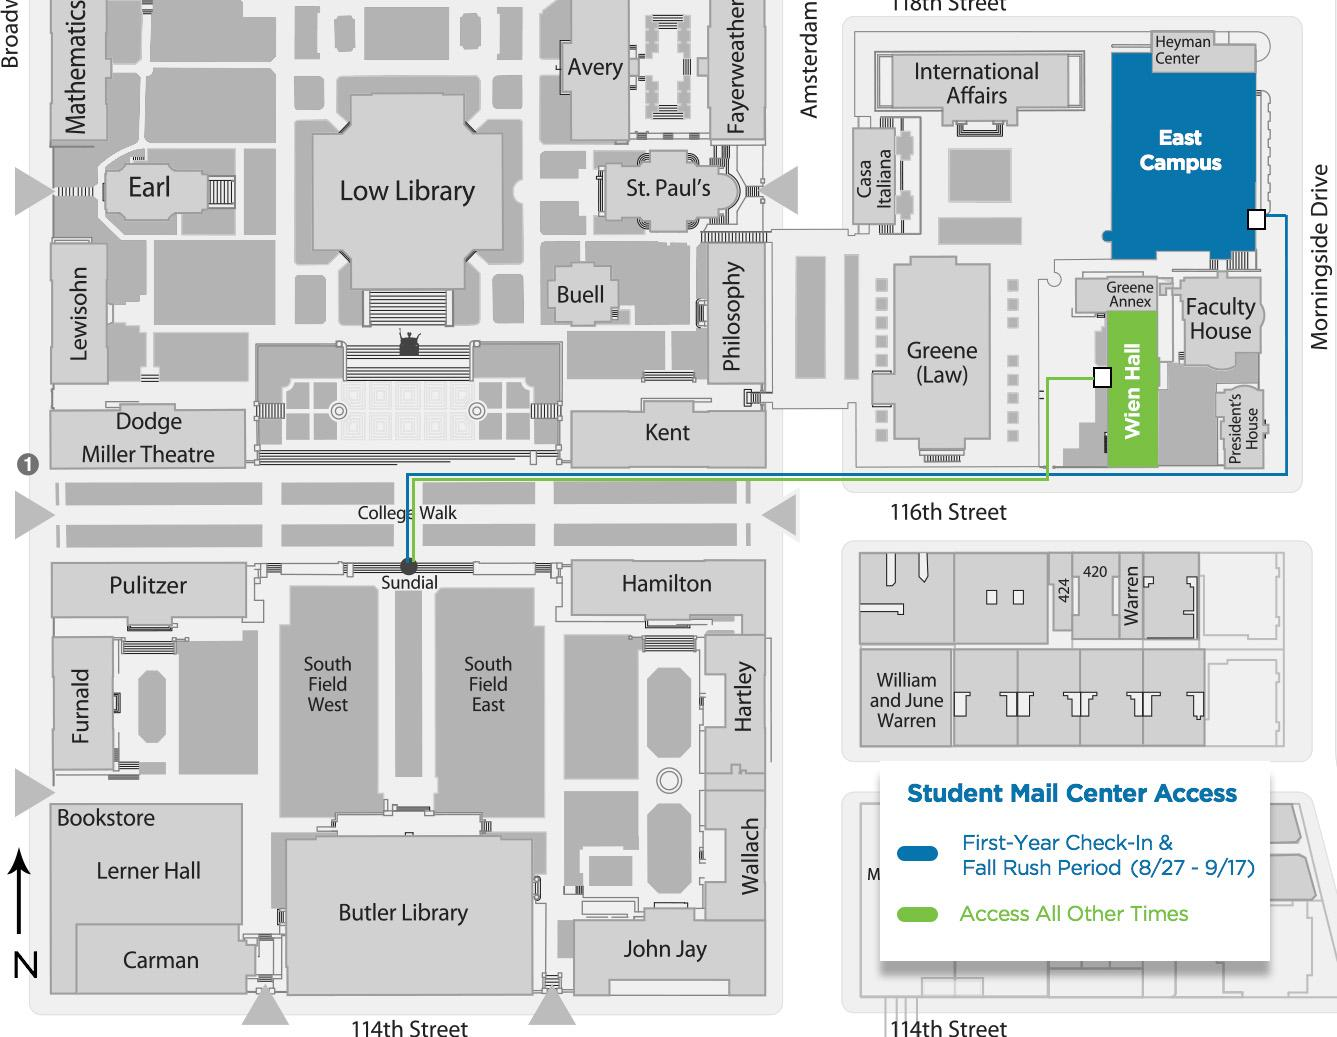 Map of Student Mail Center access points.